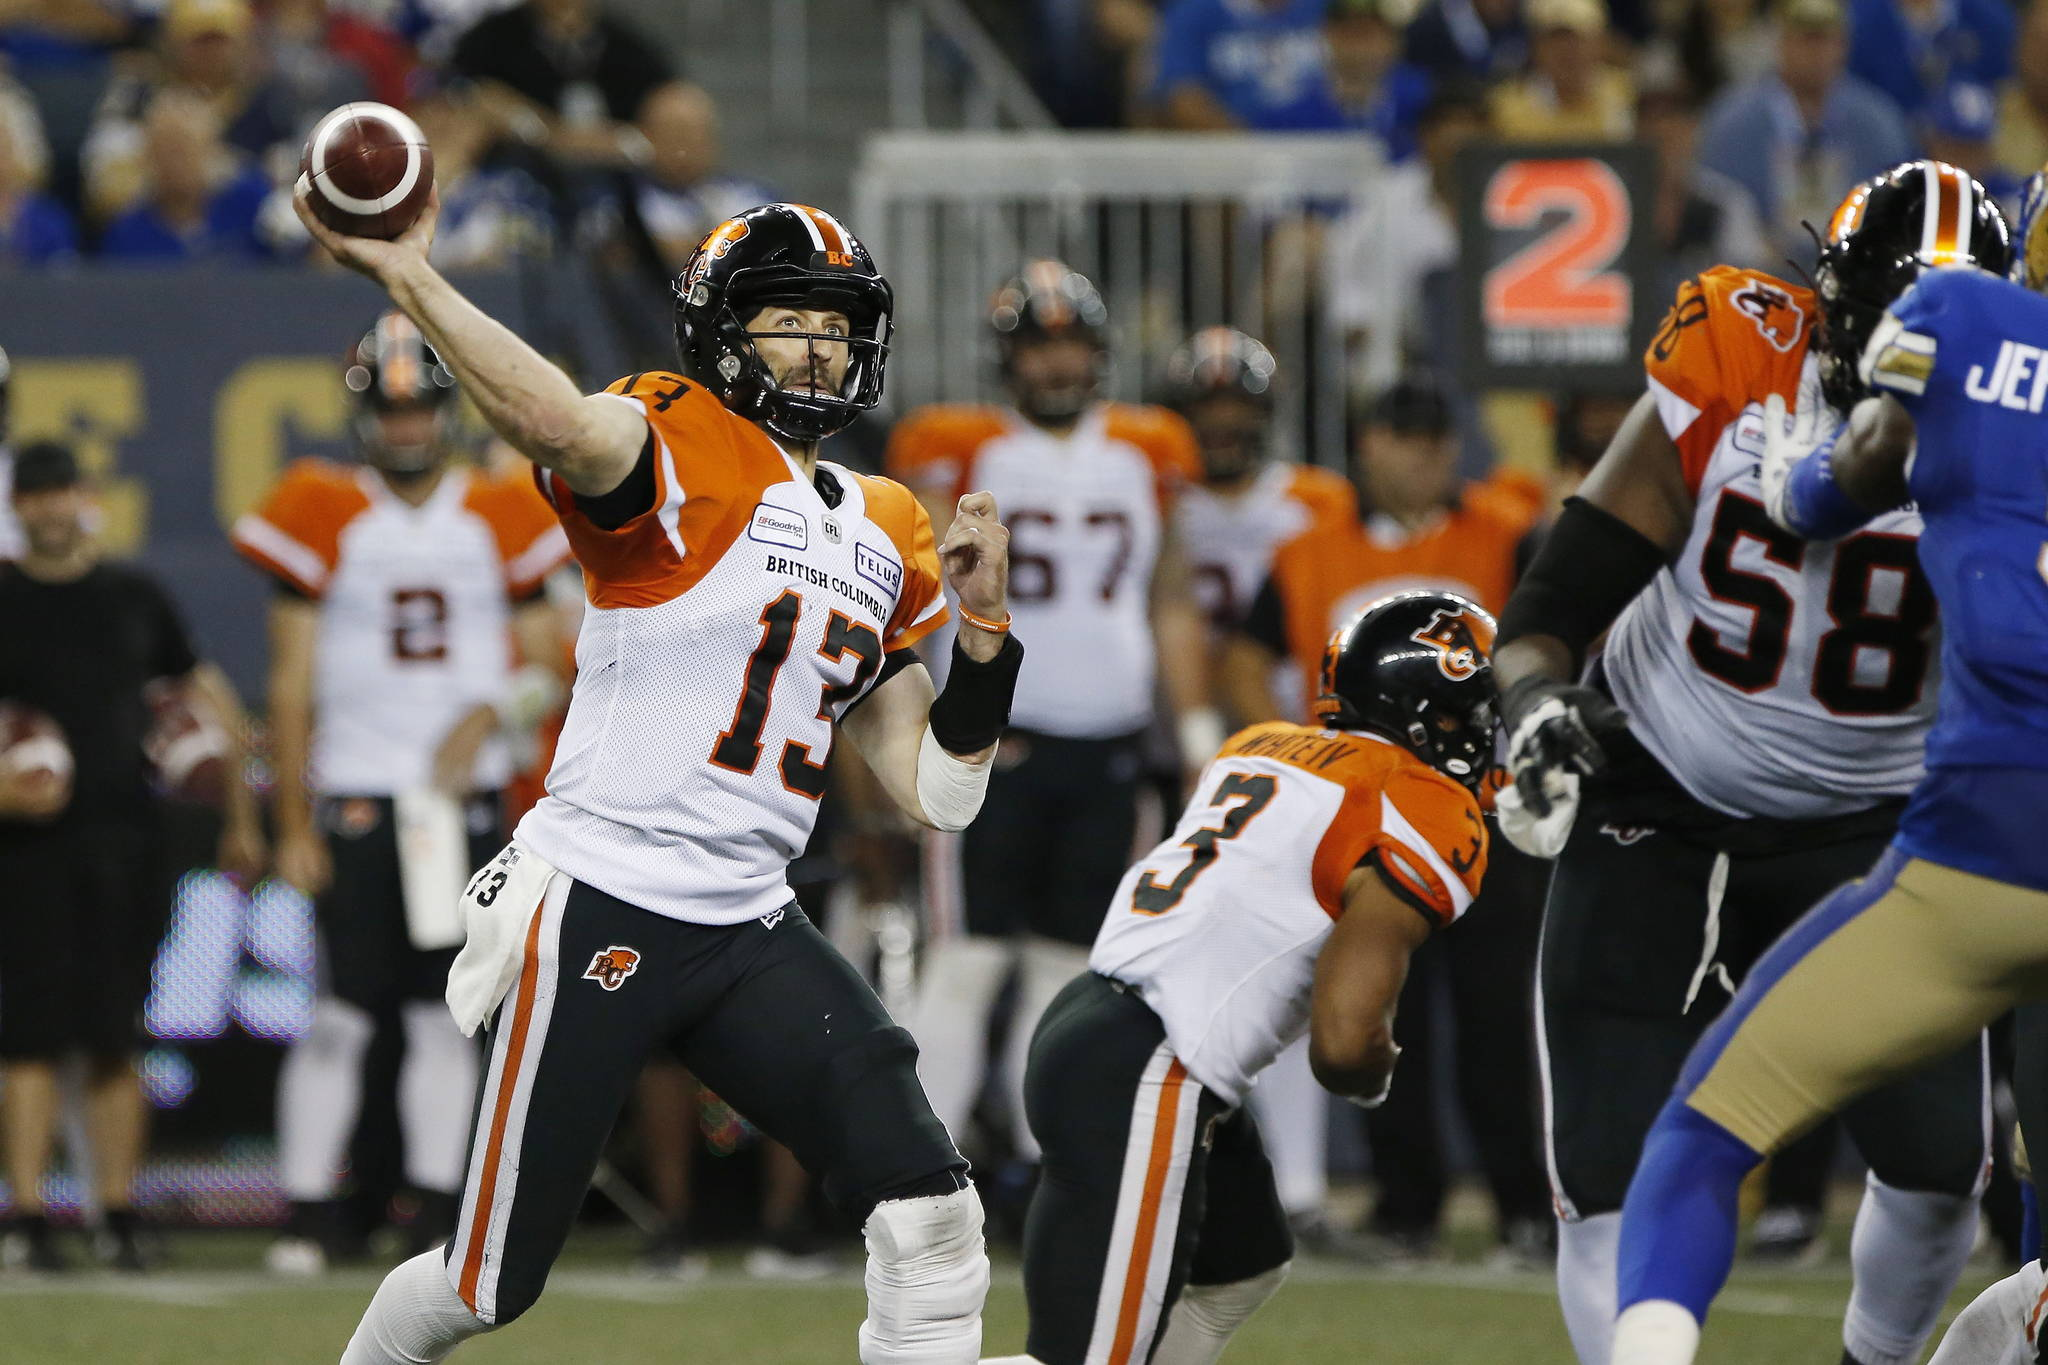 The B.C. Lions are looking to snap a five-game losing skid this weekend, but the task will be tough as they go up against one of the league's top teams. BC Lions quarterback Mike Reilly (13) throws against the Winnipeg Blue Bombers during the second half of CFL action in Winnipeg Thursday, Aug. 15, 2019. THE CANADIAN PRESS/John Woods